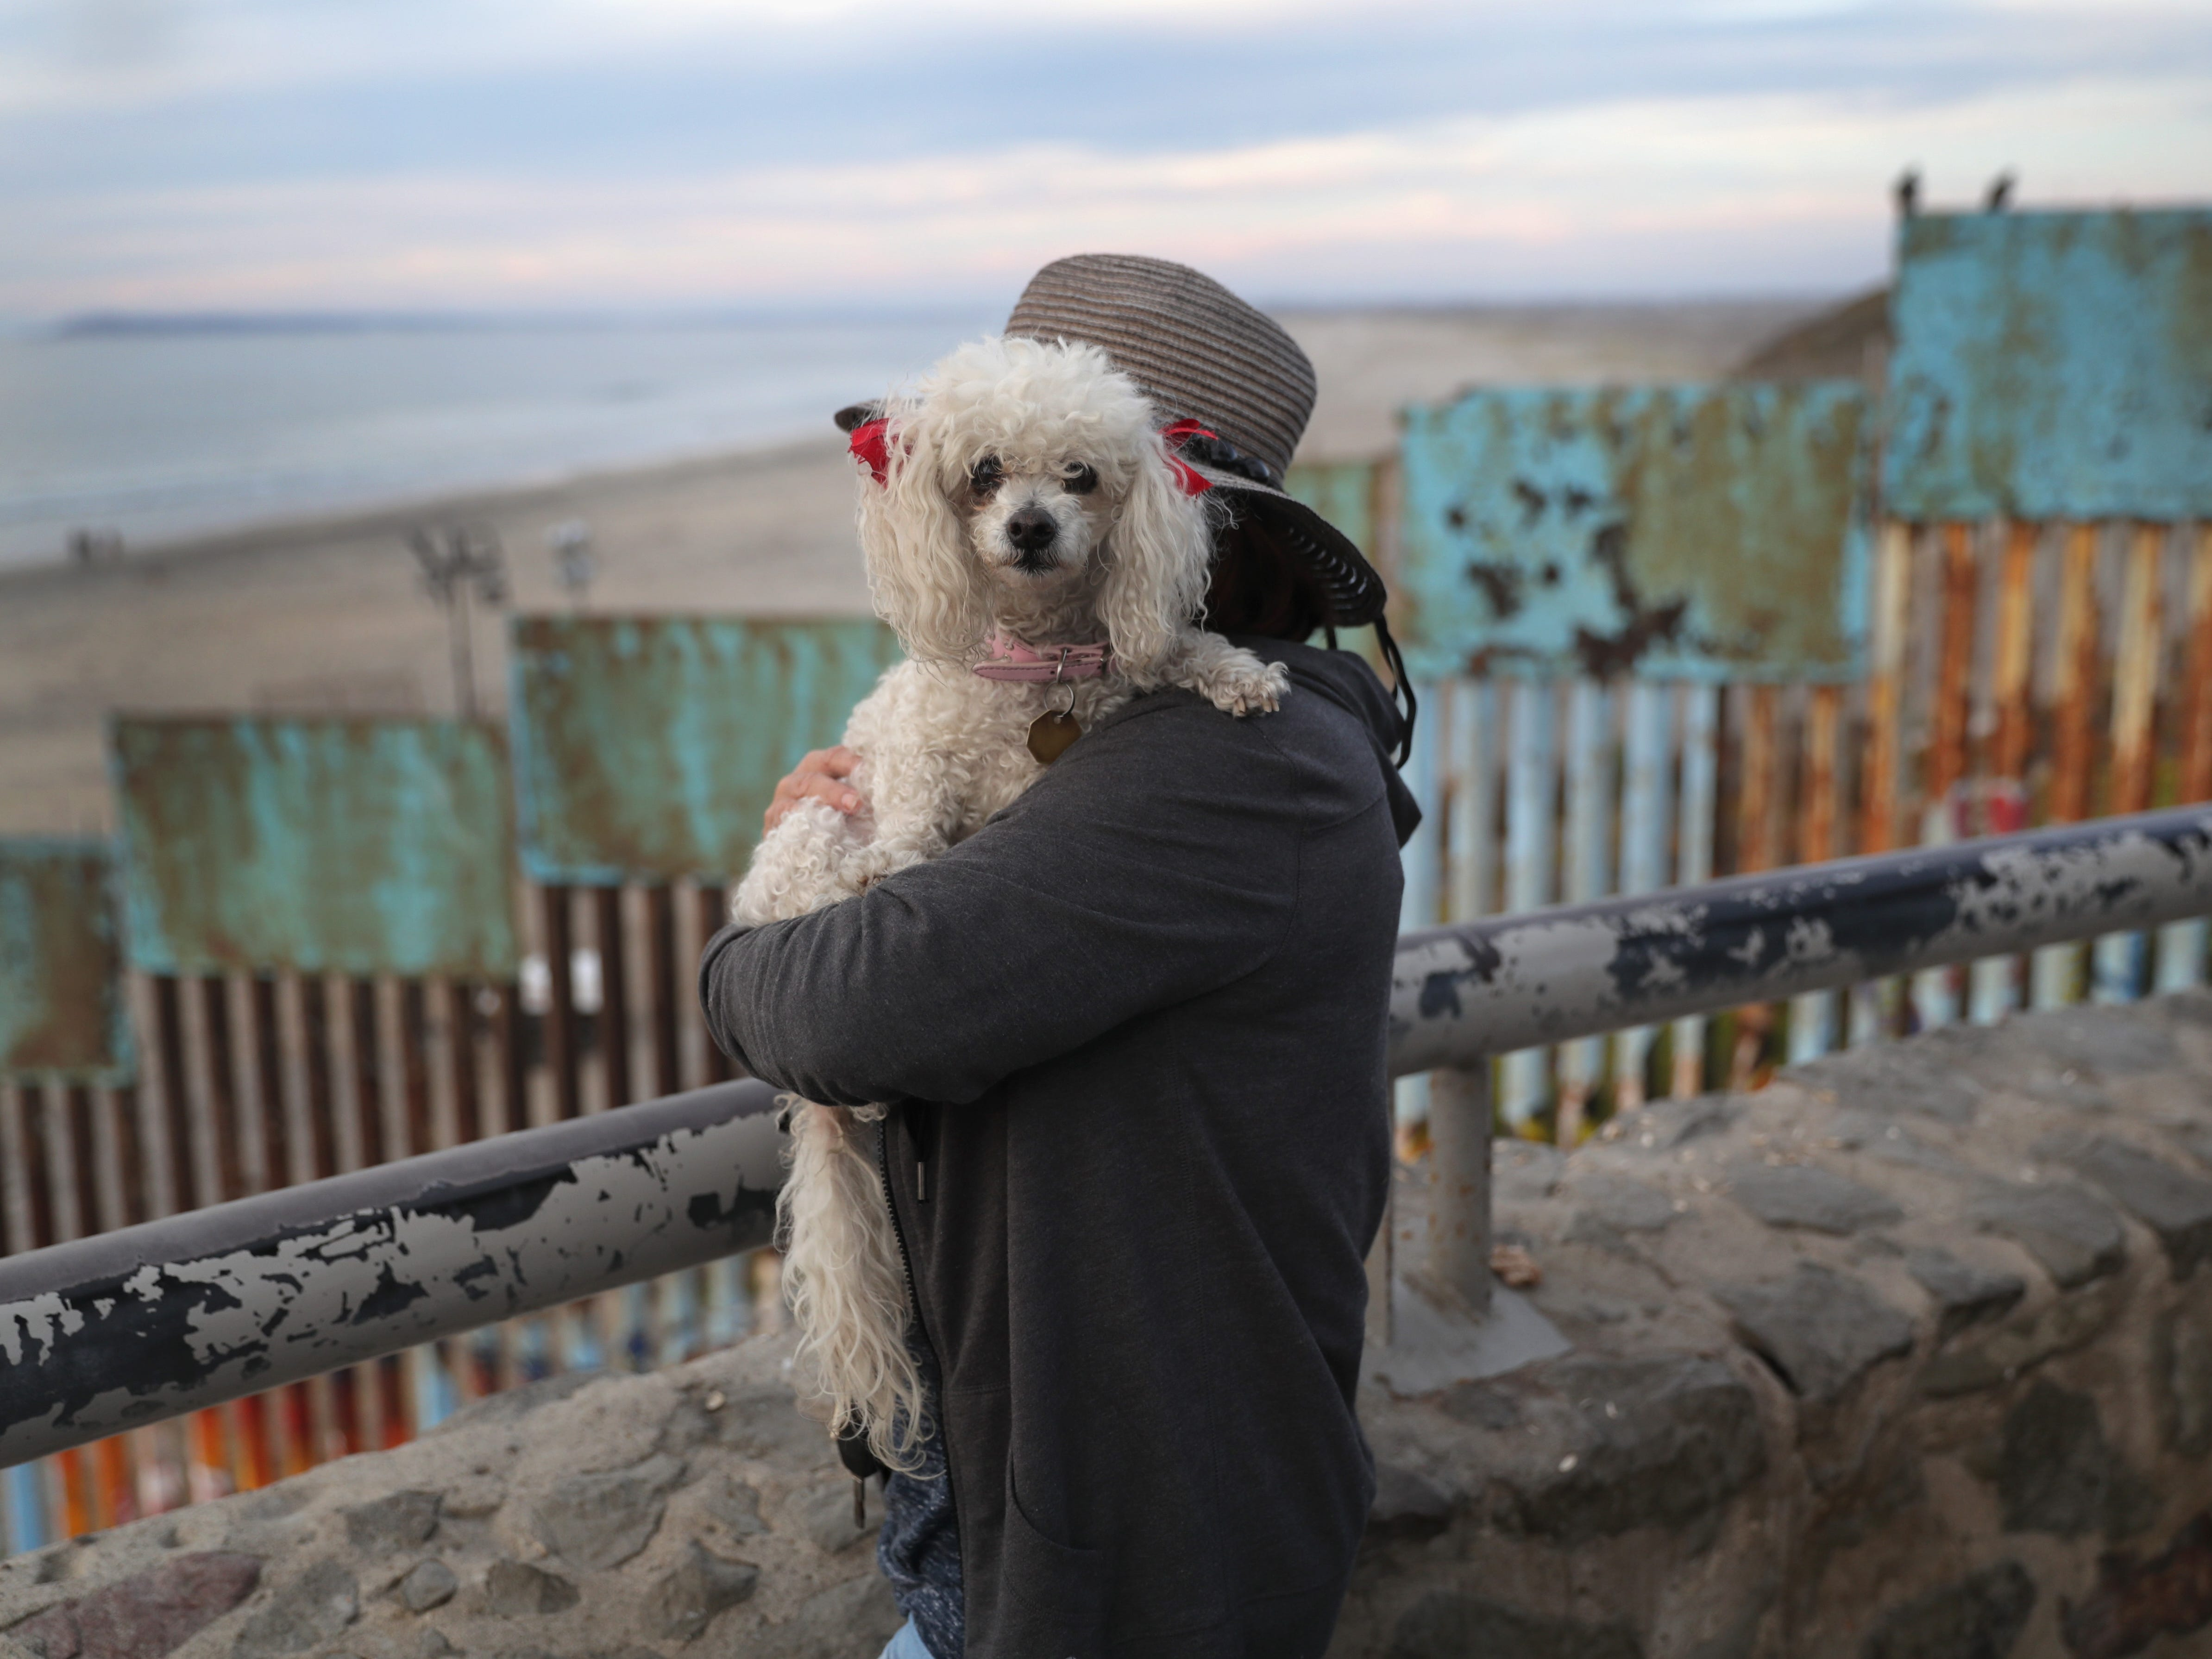 Playas de Tijuana resident Juantia Leon holds her poodle Mini while taking in the view of the Pacific Ocean next to the U.S.-Mexico border fence on Nov. 17, 2018, in Tijuana, Mexico.